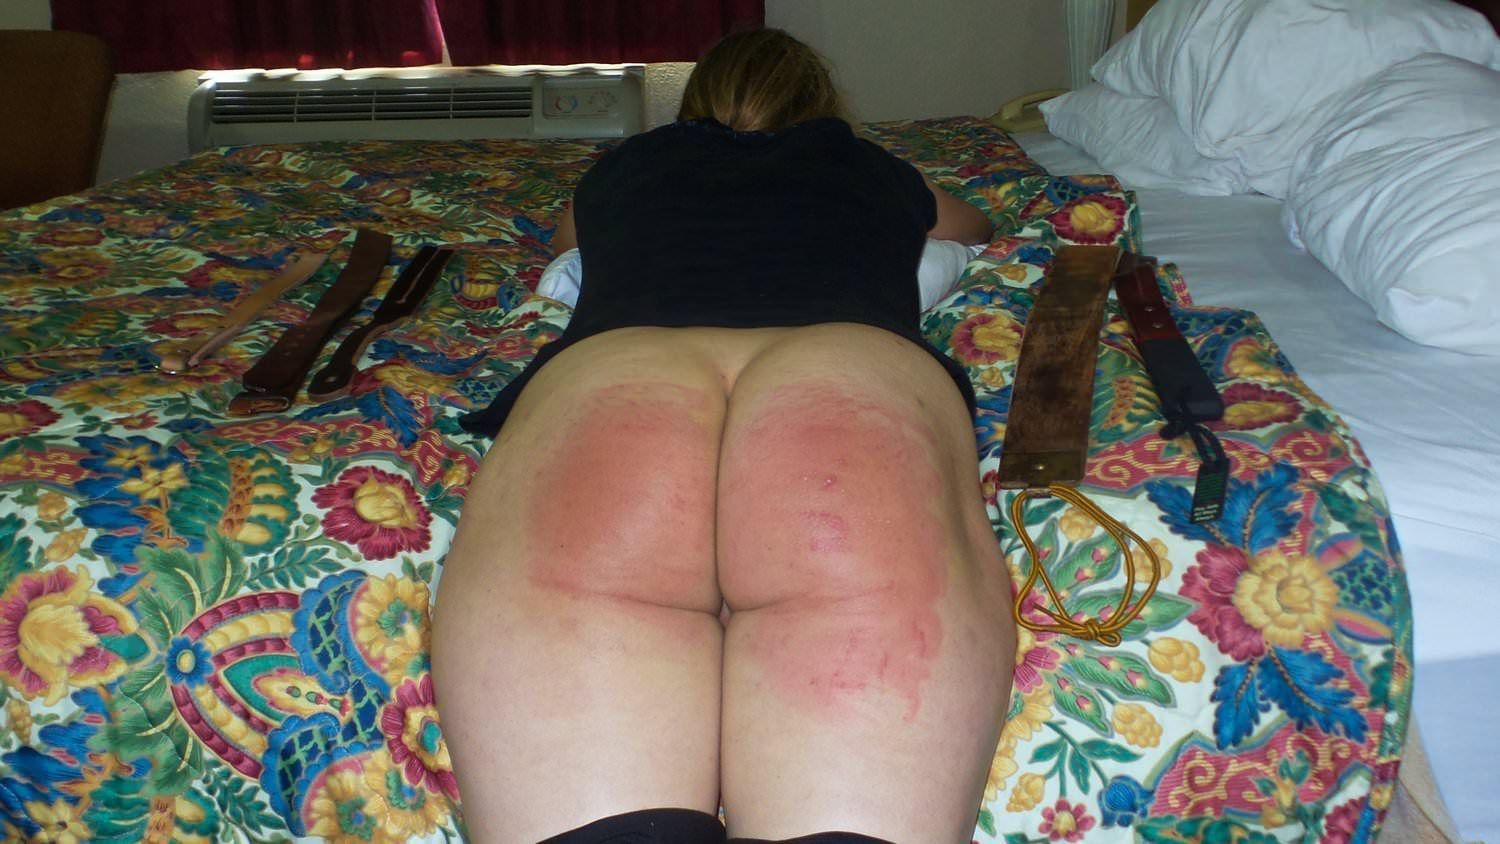 speaking, redhead twerking handjob cock load cumm on face excellent idea. support